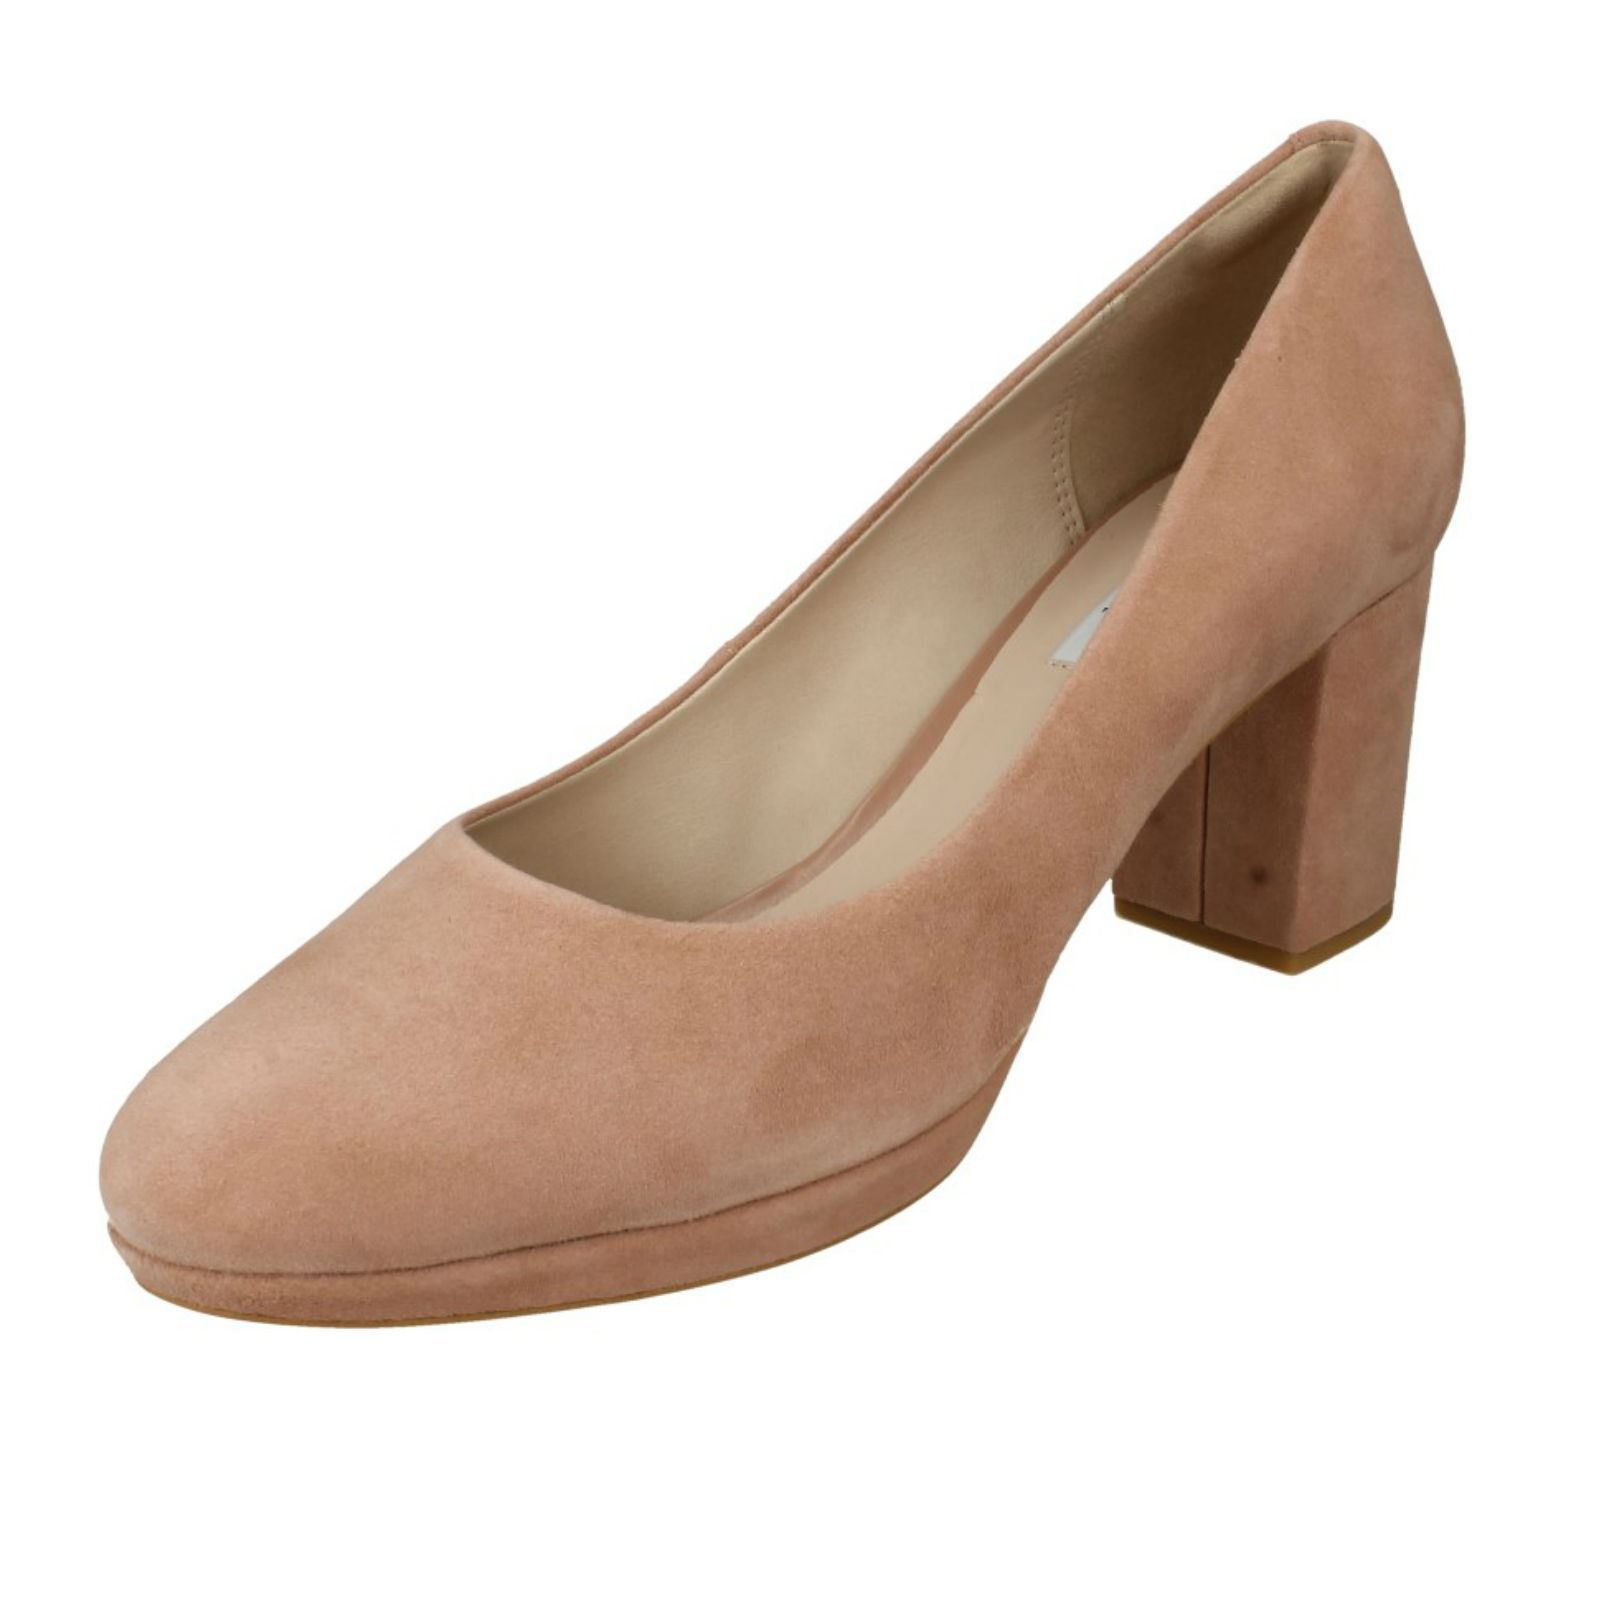 33099be3126 Women s Clarks Kelda Hope Rounded Toe High HEELS in Pink UK 5   EU 38.  About this product. Picture 1 of 10  Picture 2 of 10 ...